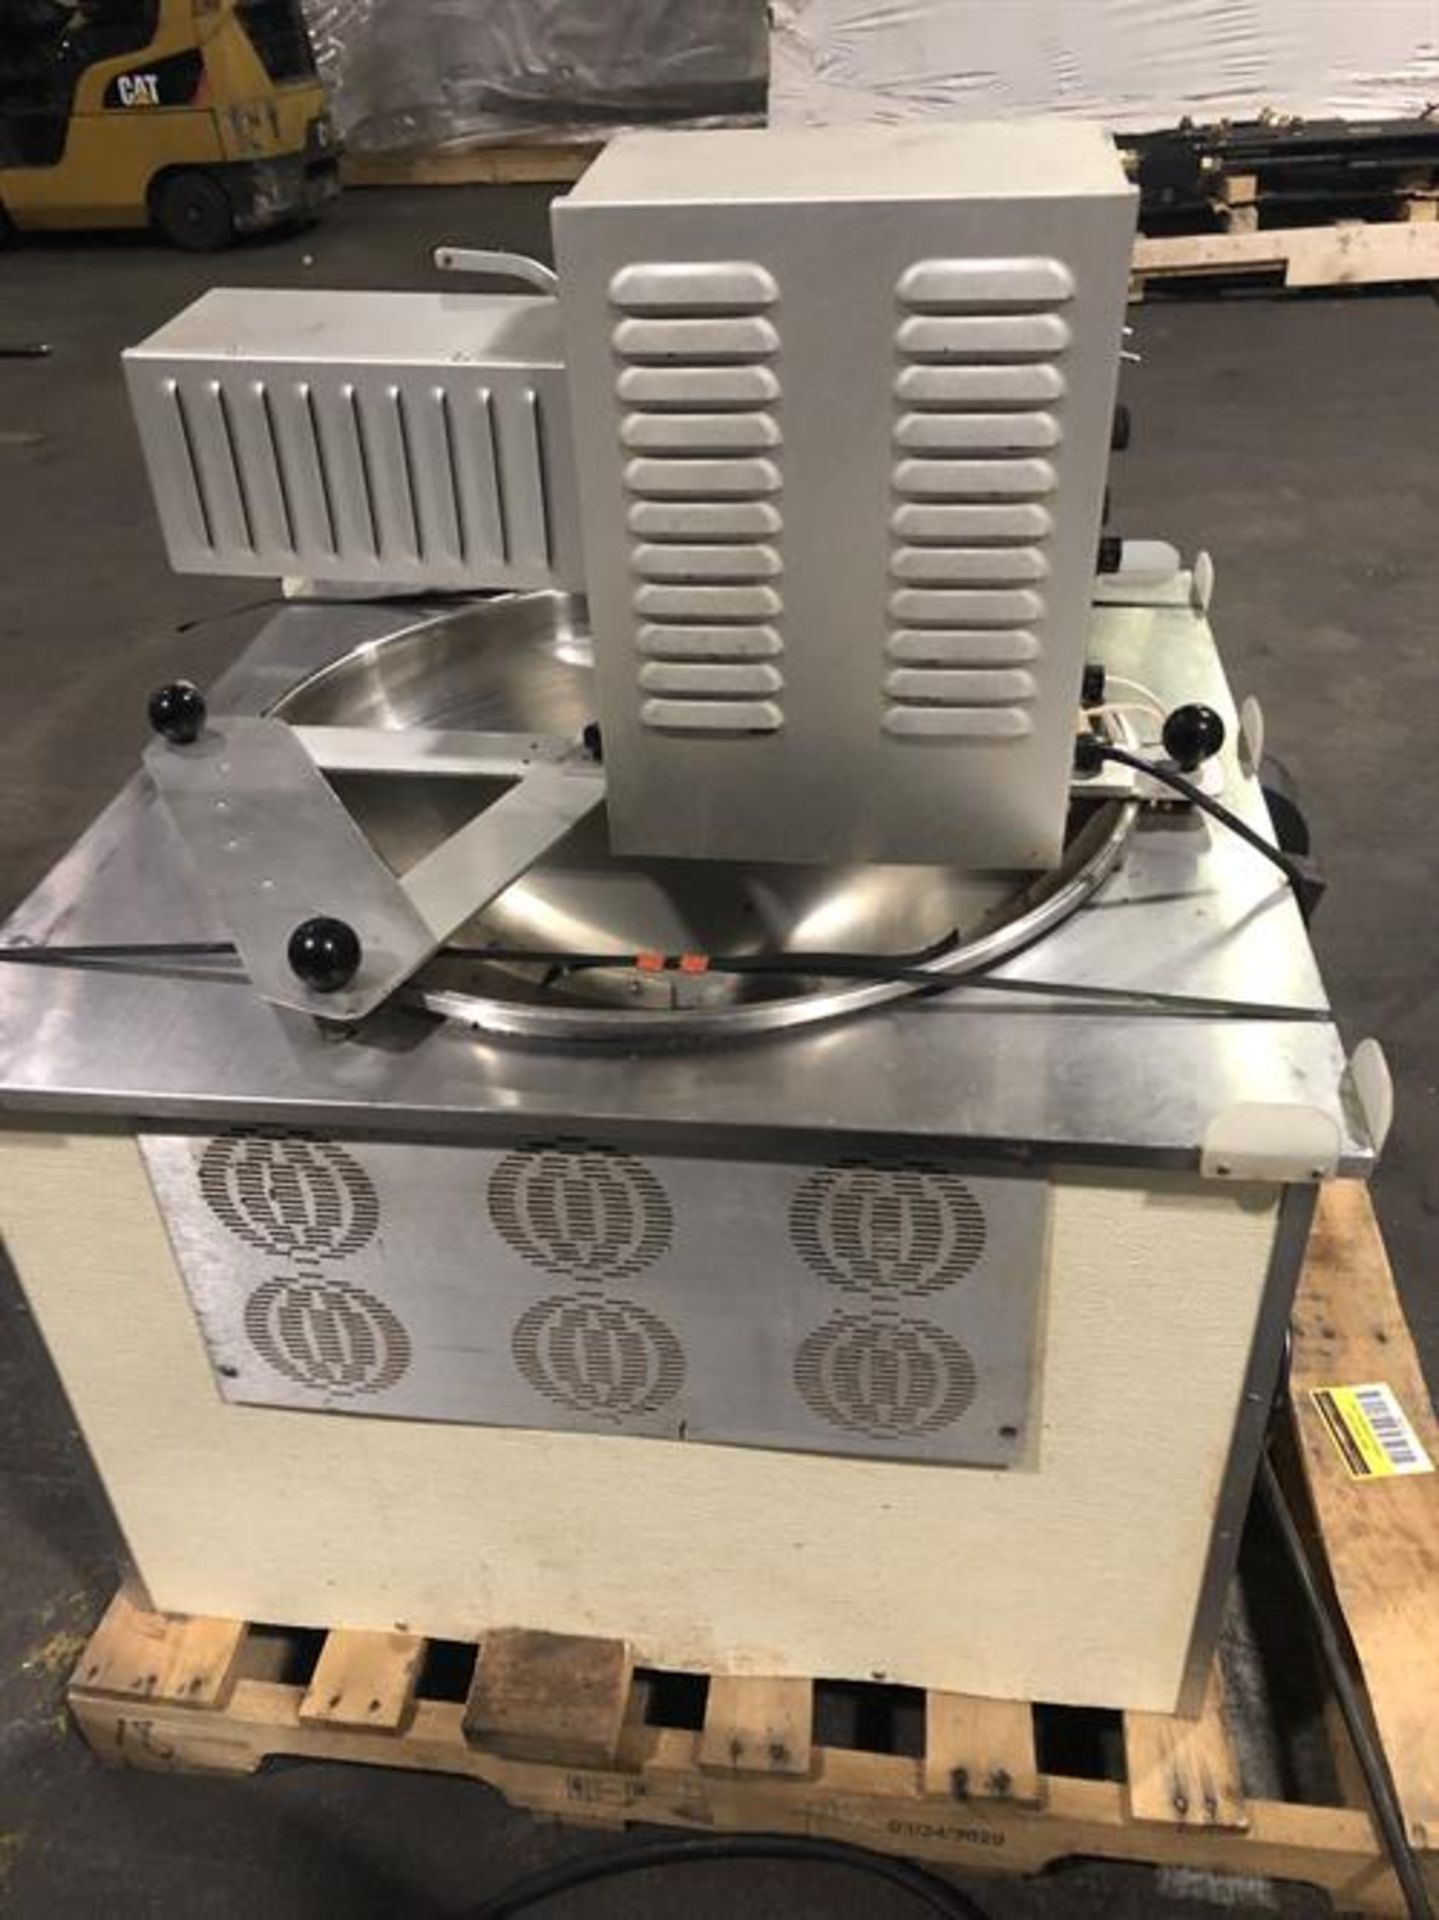 Hilliard 600lb/day Tempering Melter with Flood Mold Attachment - Electric heater and thermostat - - Image 5 of 6